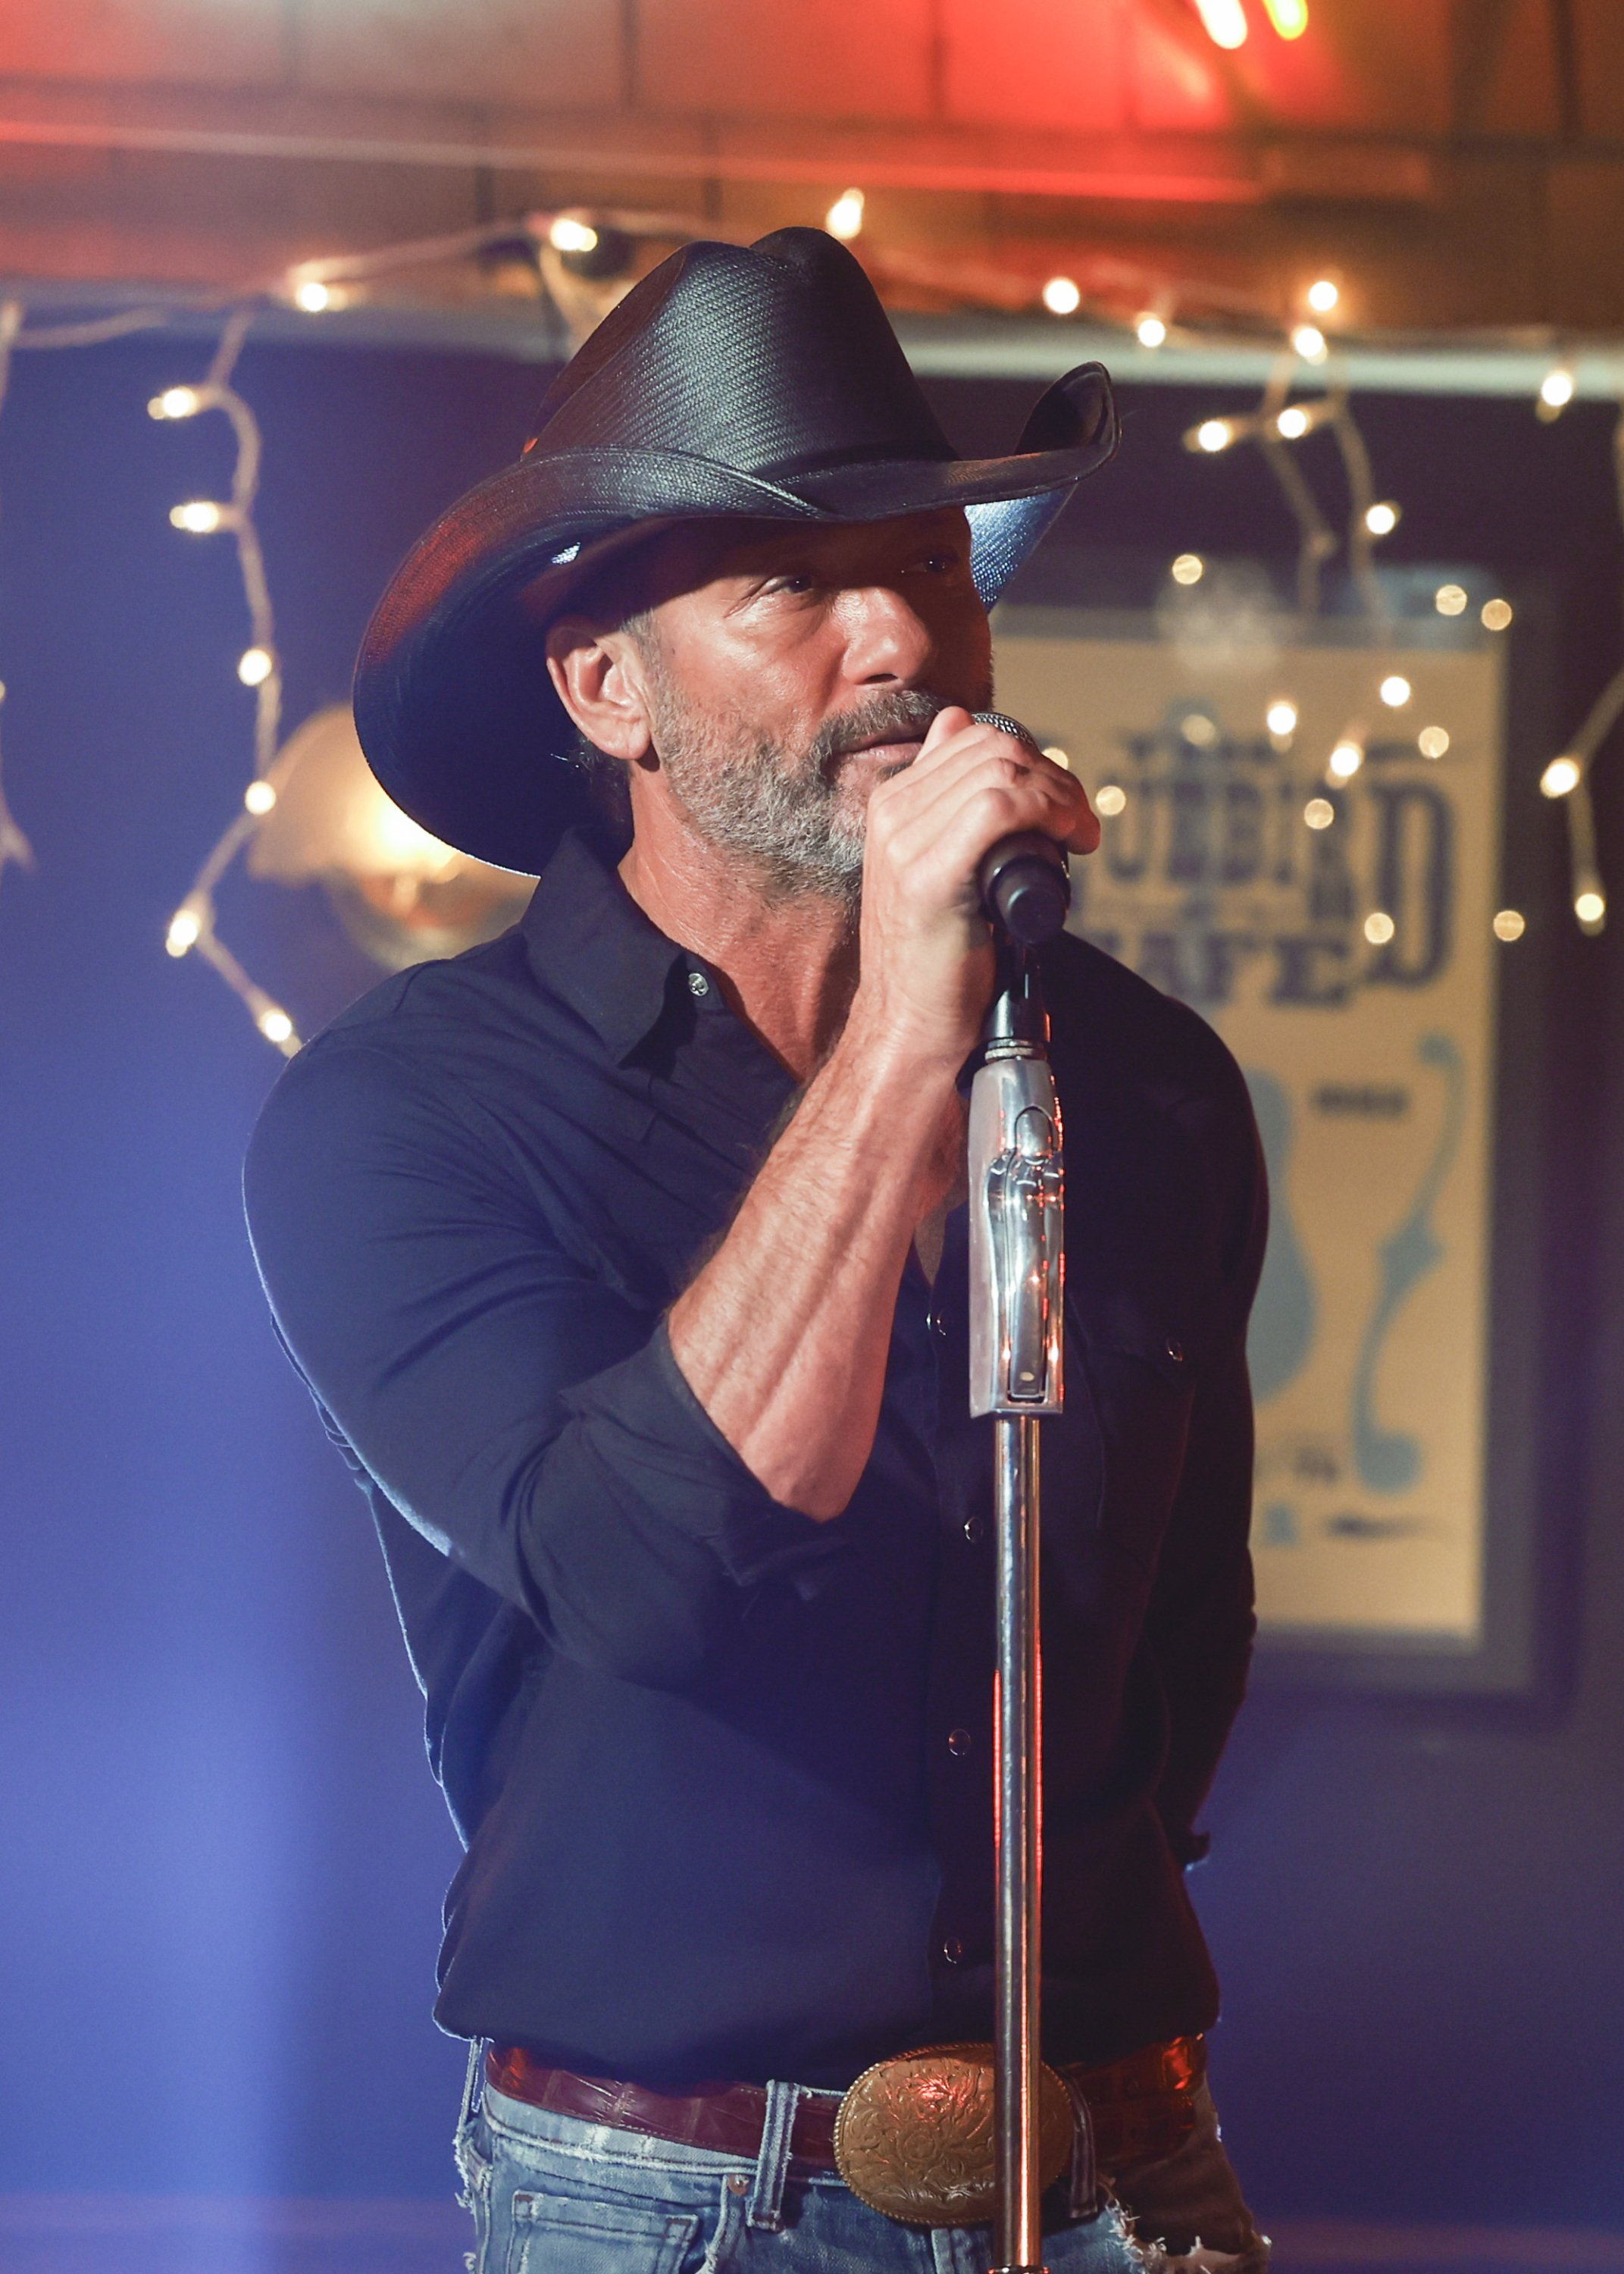 Tim McGraw performing at the American Country Music Awards in Nashville, September, 2020. | Photo: Getty Images.